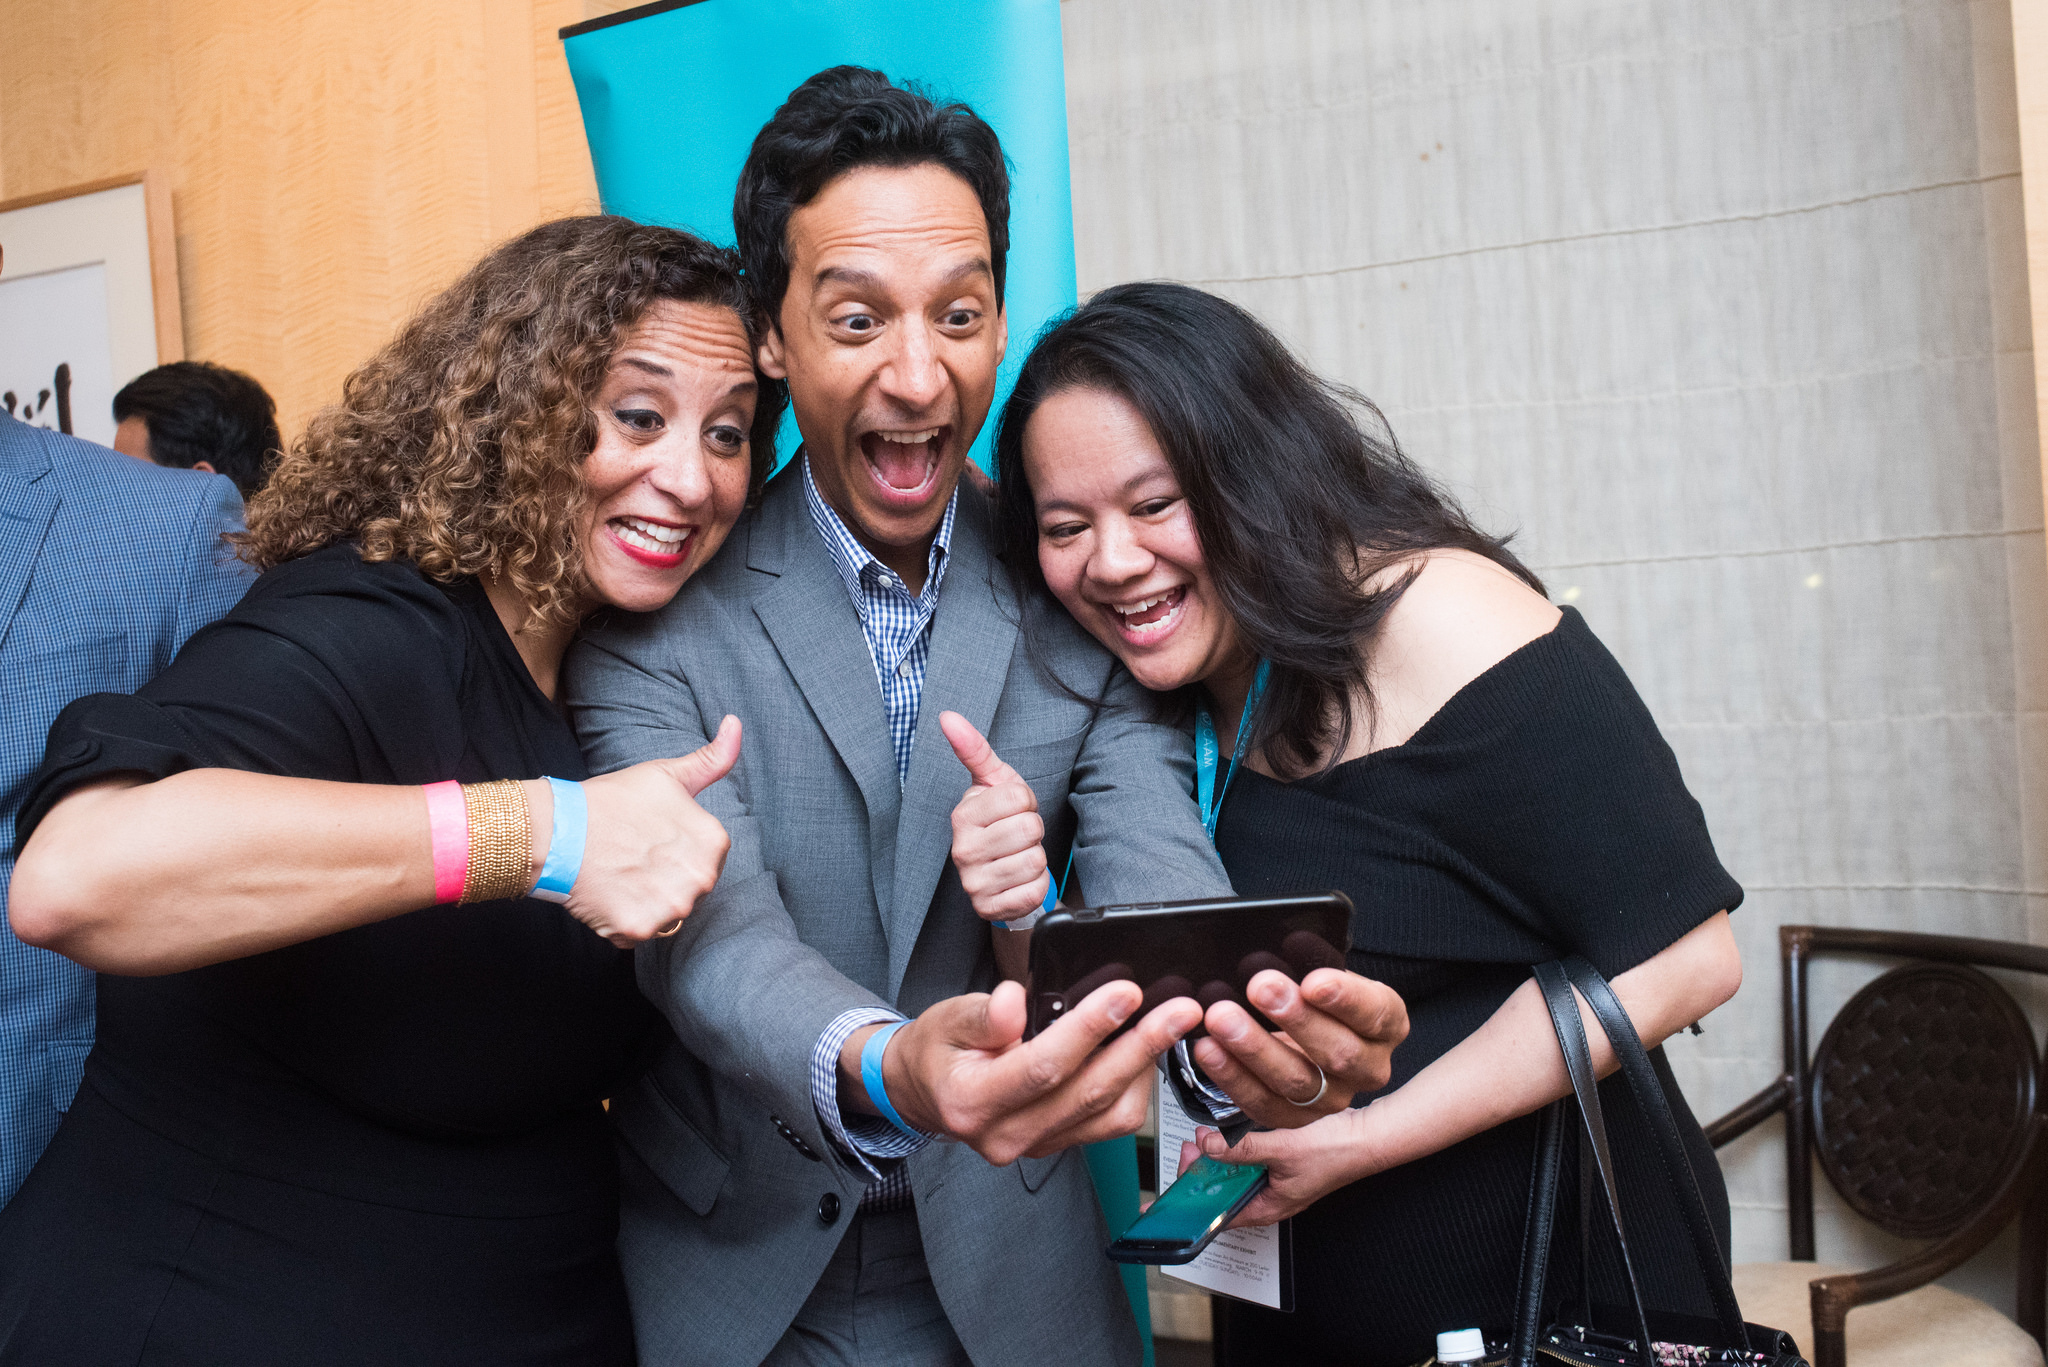 Karen Horne, Danny Pudi and Christine Chen at #CAAMFest35 Opening Night gala. Photo by Jay Jao for CAAM.